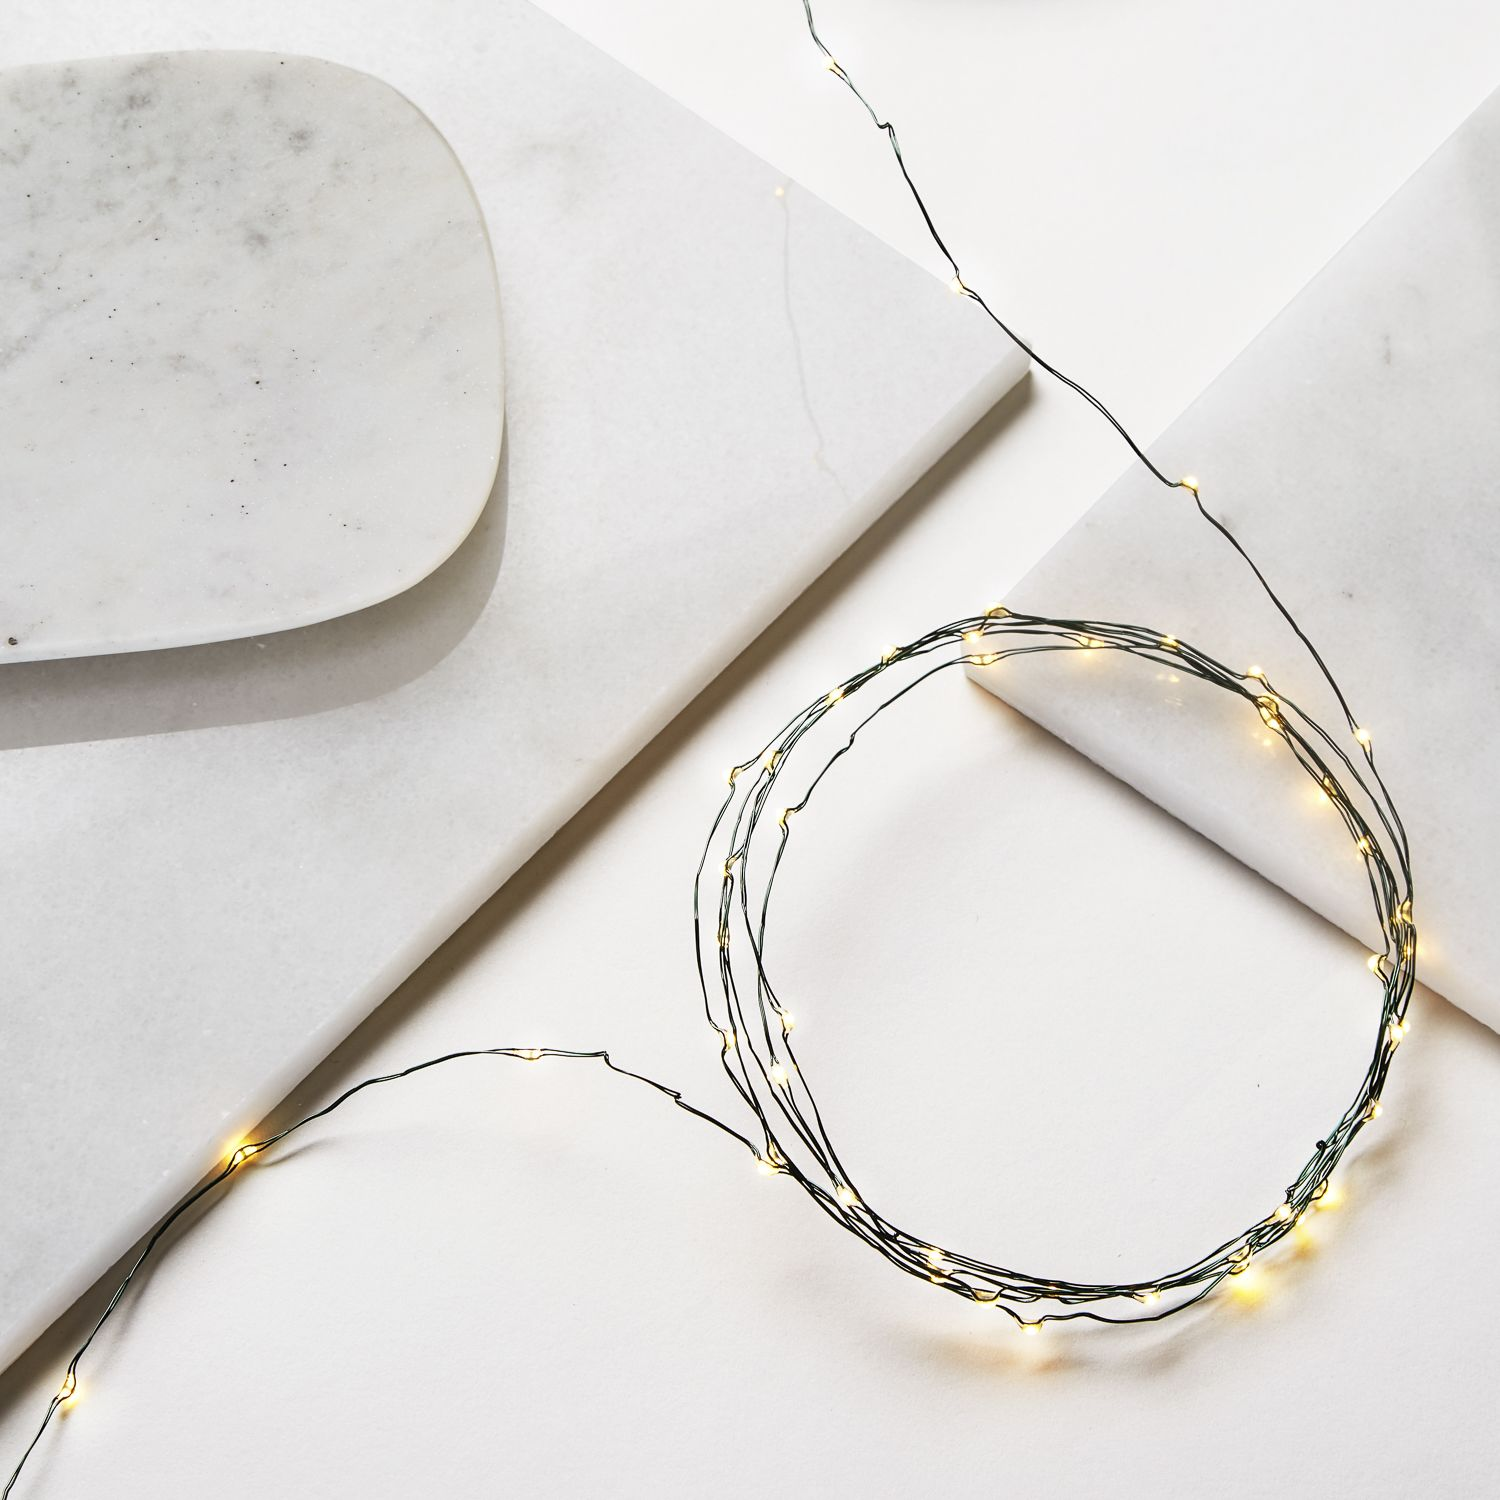 String Lights With Wire : Lights.com String Lights Fairy Lights 12ft Warm White Battery-Operated Green Wire Fairy ...